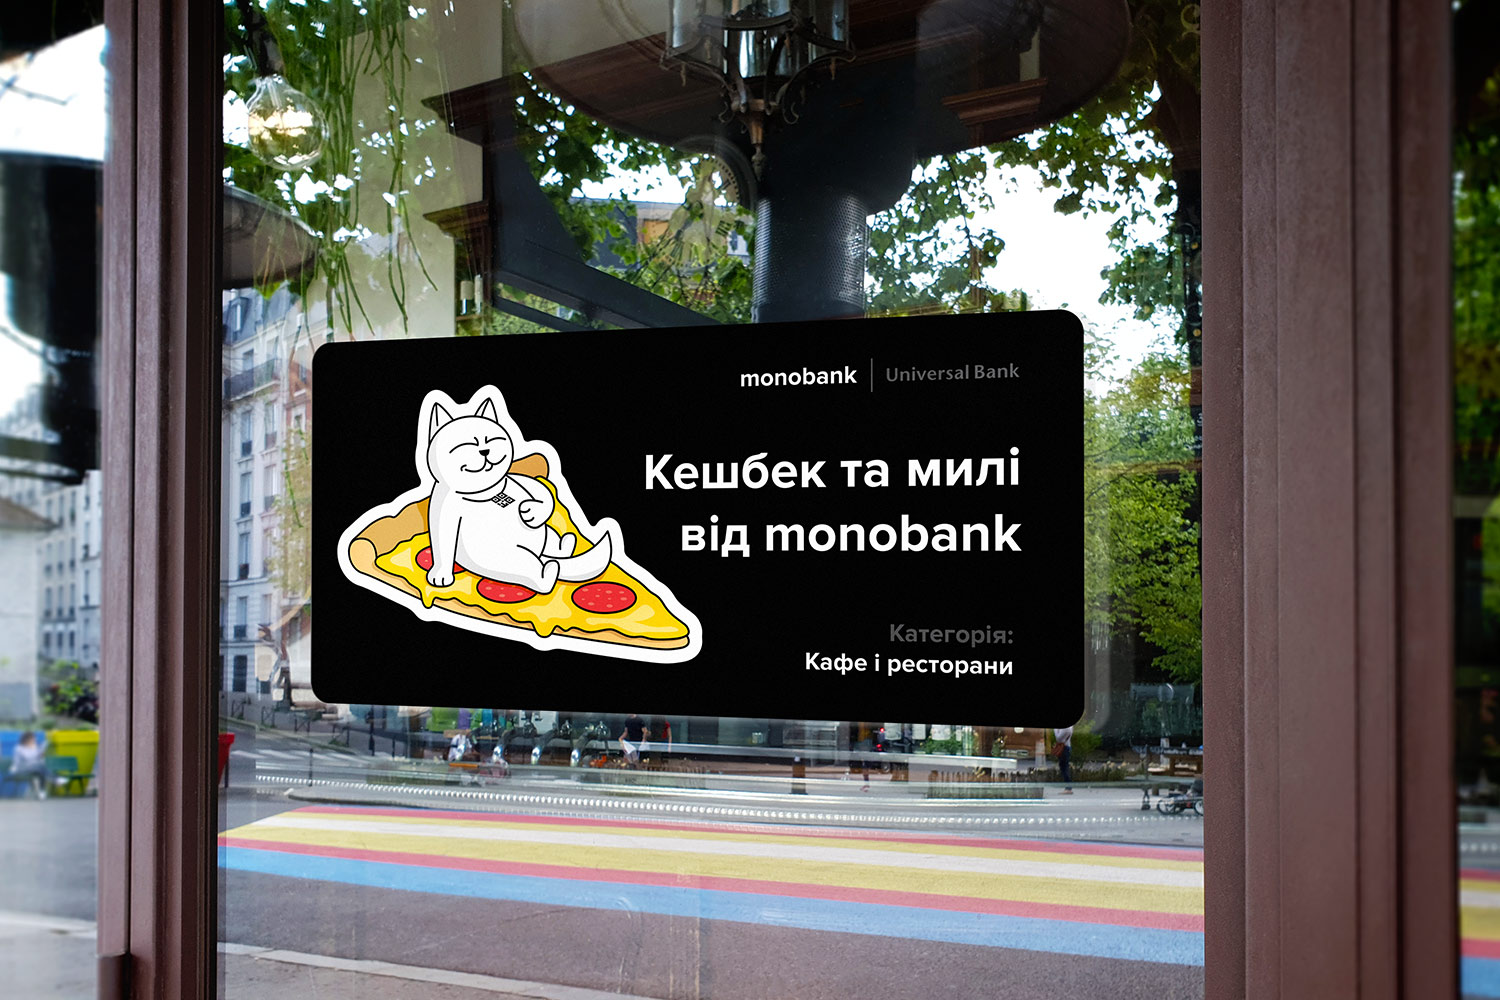 Cashback and miles from monobank. Category: cafes and restaurants. Cat and pizza, sticker.